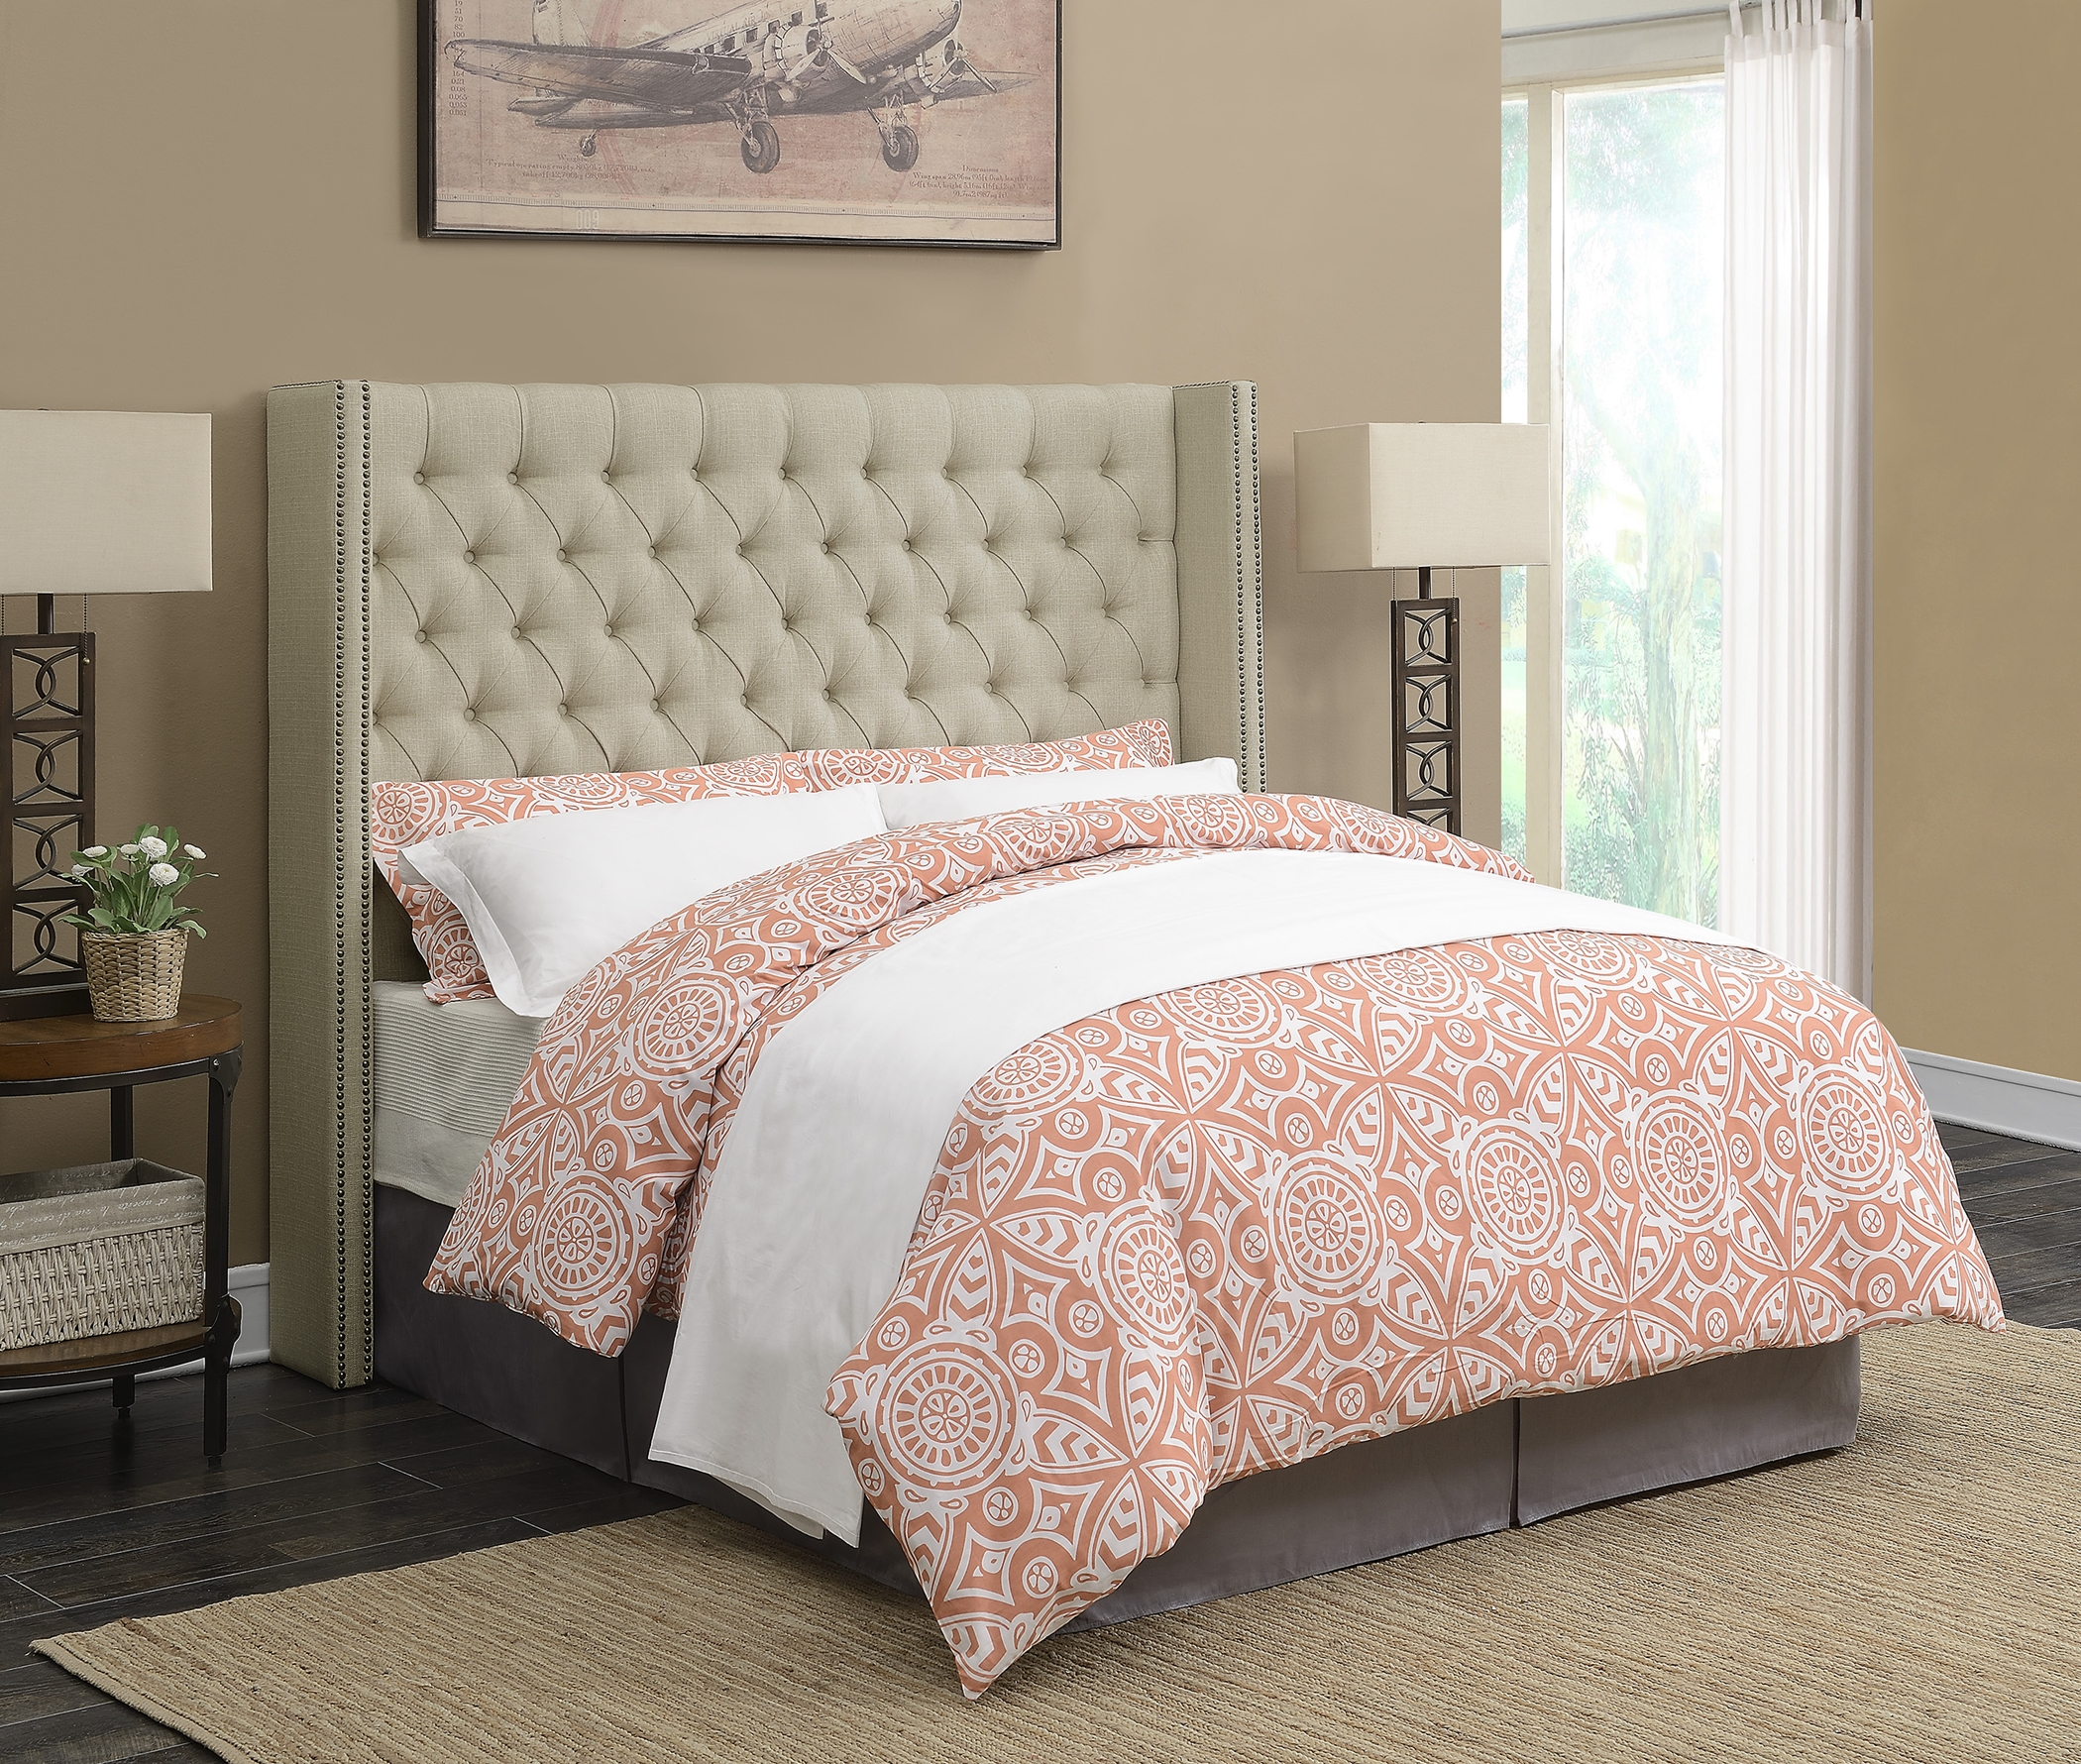 Benicia Beige Upholstered King Headboard